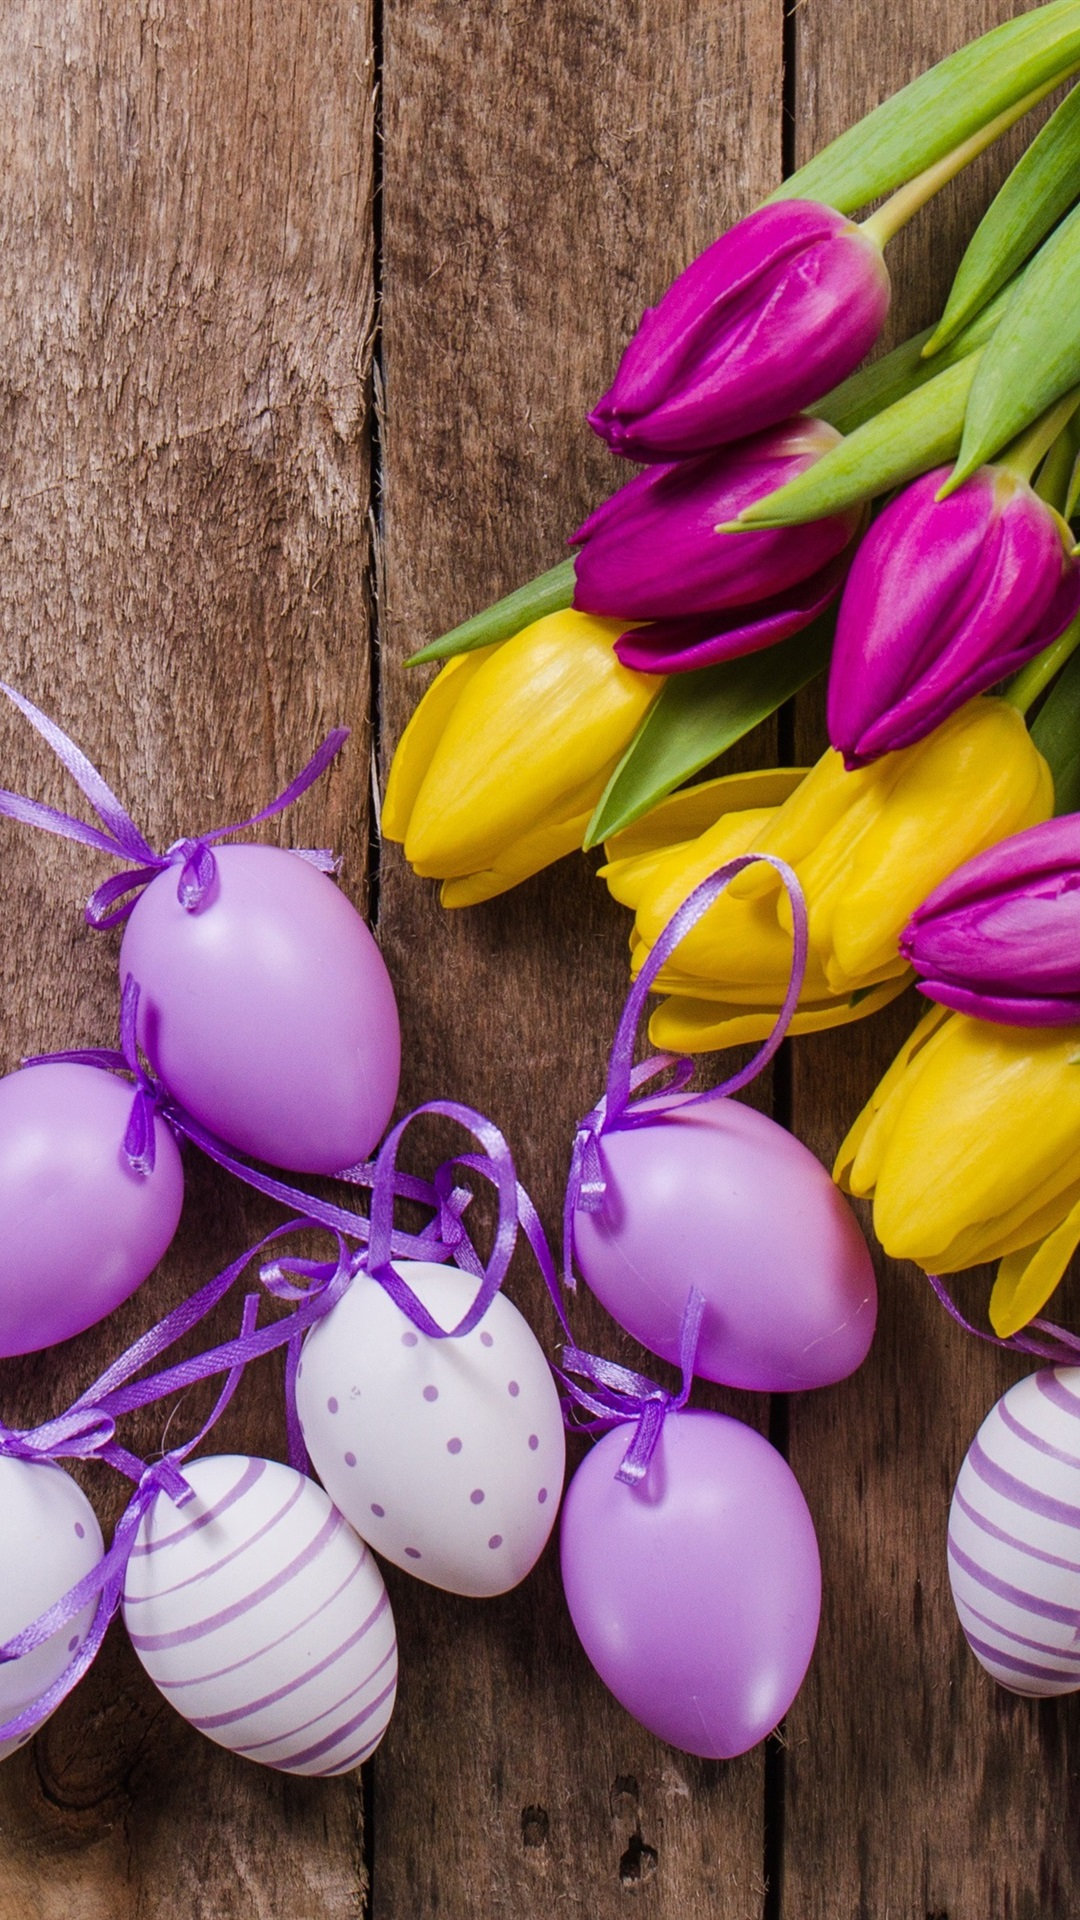 Yellow And Purple Tulips Eggs Easter 1080x1920 Iphone 8 7 6 6s